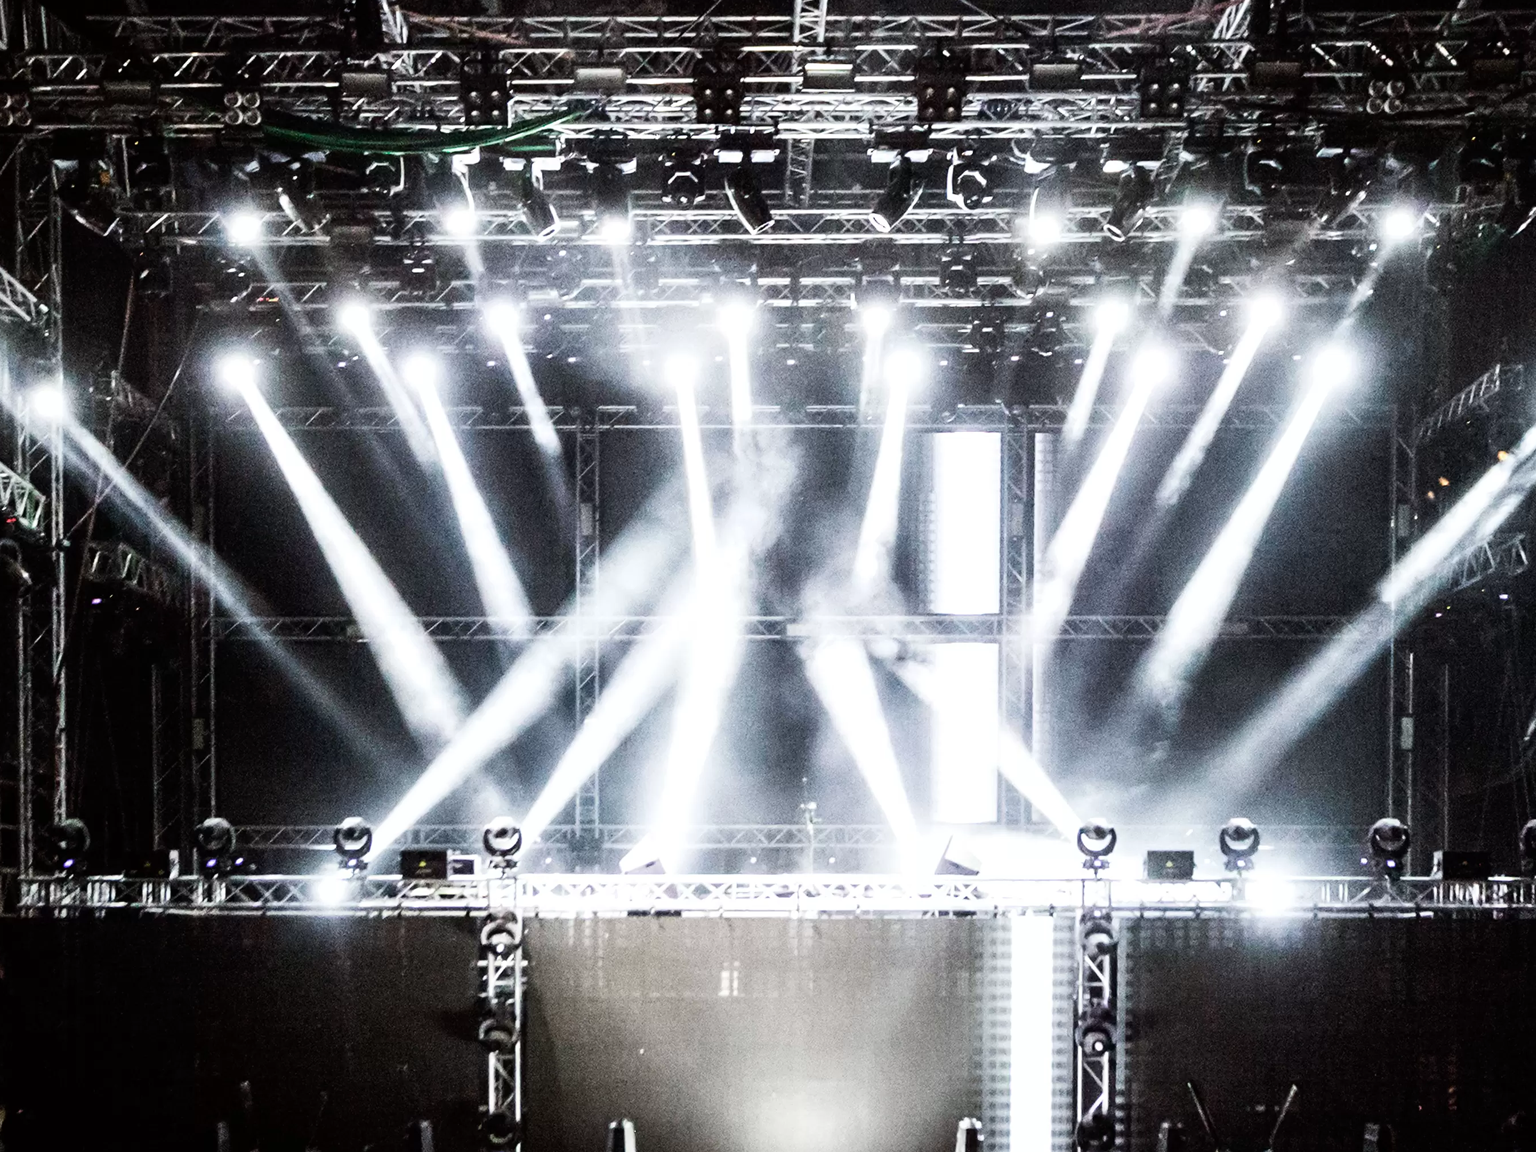 Lots of stage lights installed on an empty stage ready for a performance from a musician